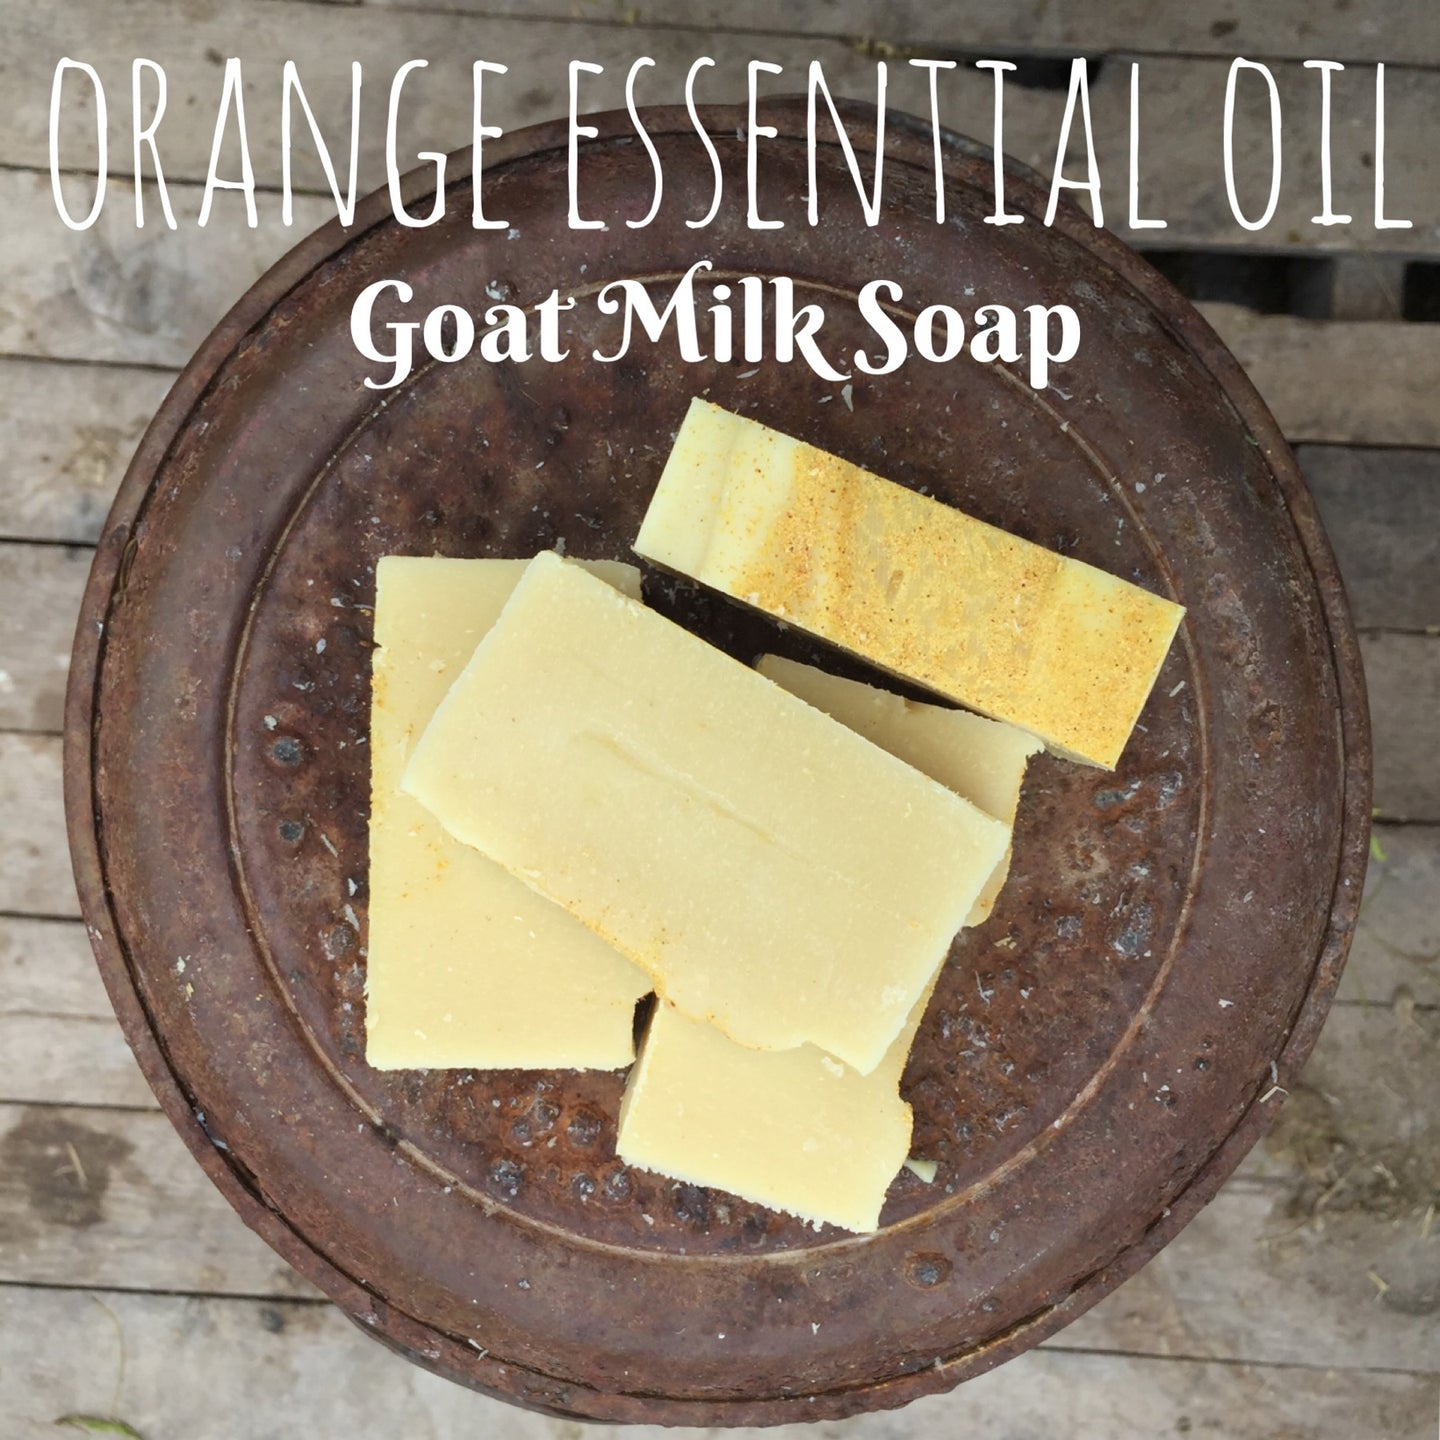 Edens Lilly Goat Milk Soap - Orange Essential Oil